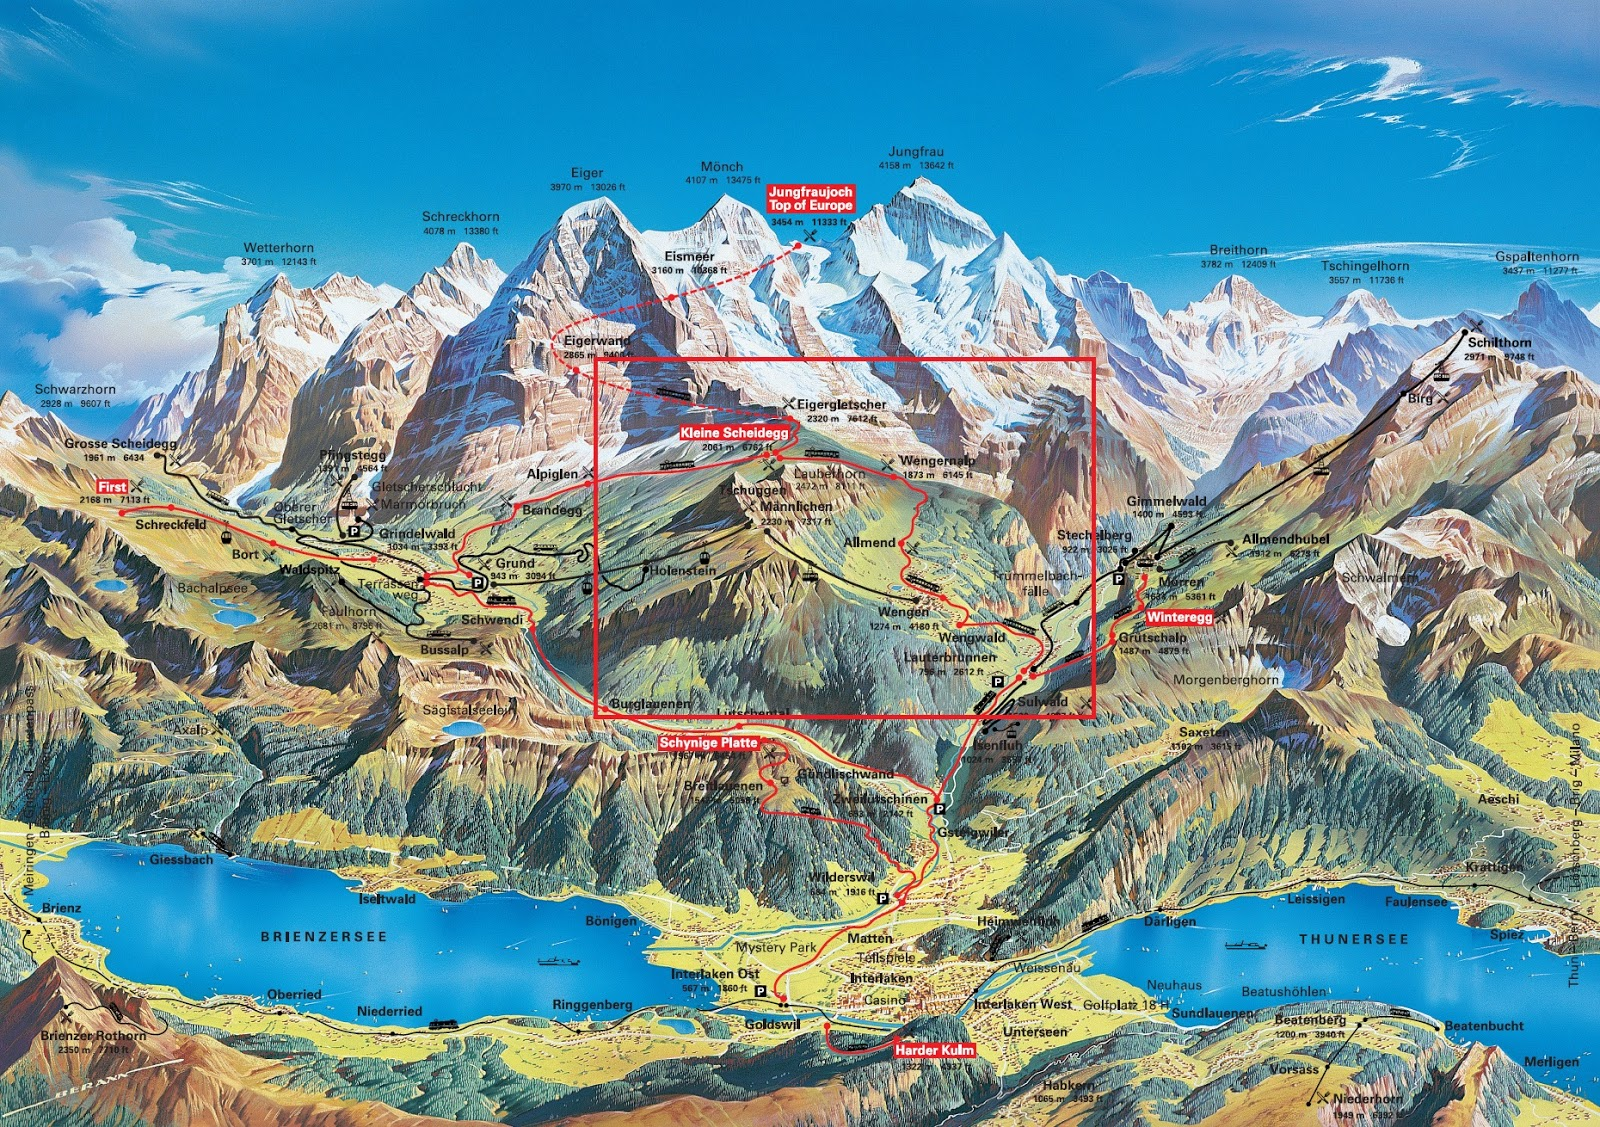 The Ecosystem of the Swiss Alps: Swiss Alps: Alpine Glacial Ecosystem